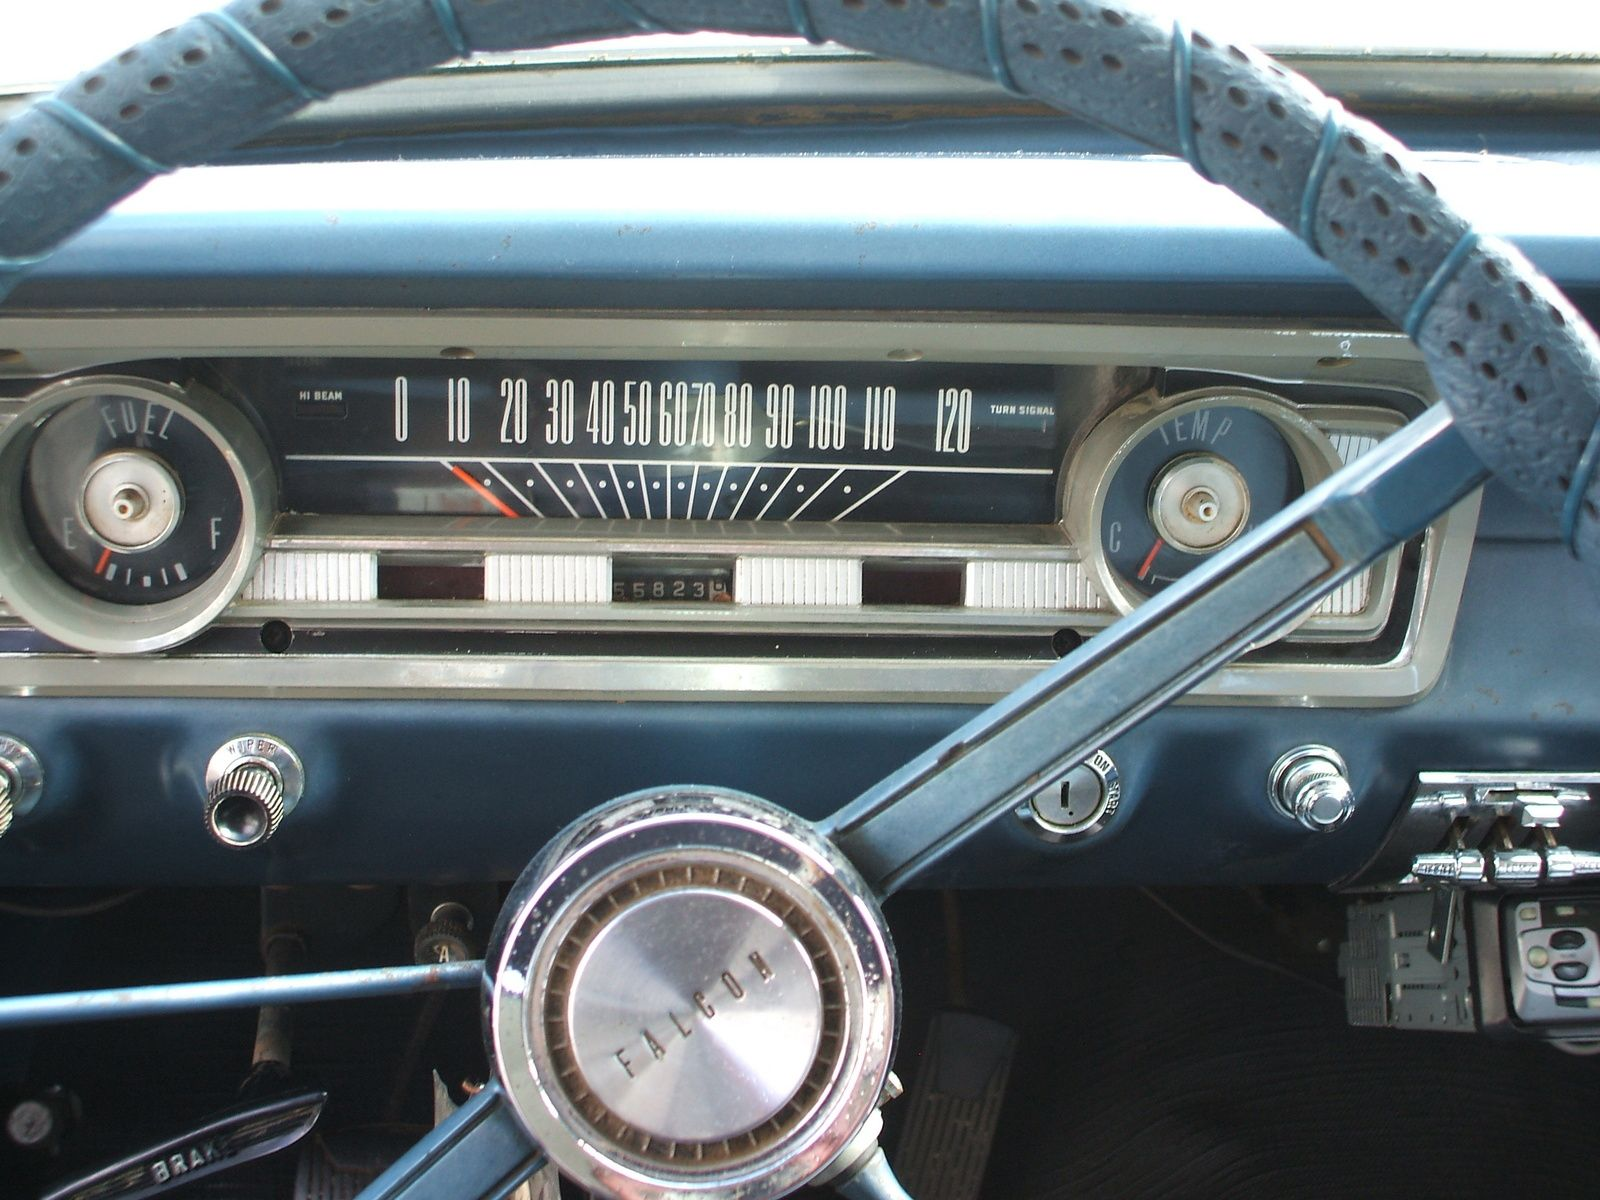 1965 Ford Falcon For Sale On Craigslist 2013 Interior 1964 Ranchero Sprint Huge Collection Of Cars Wallpaper